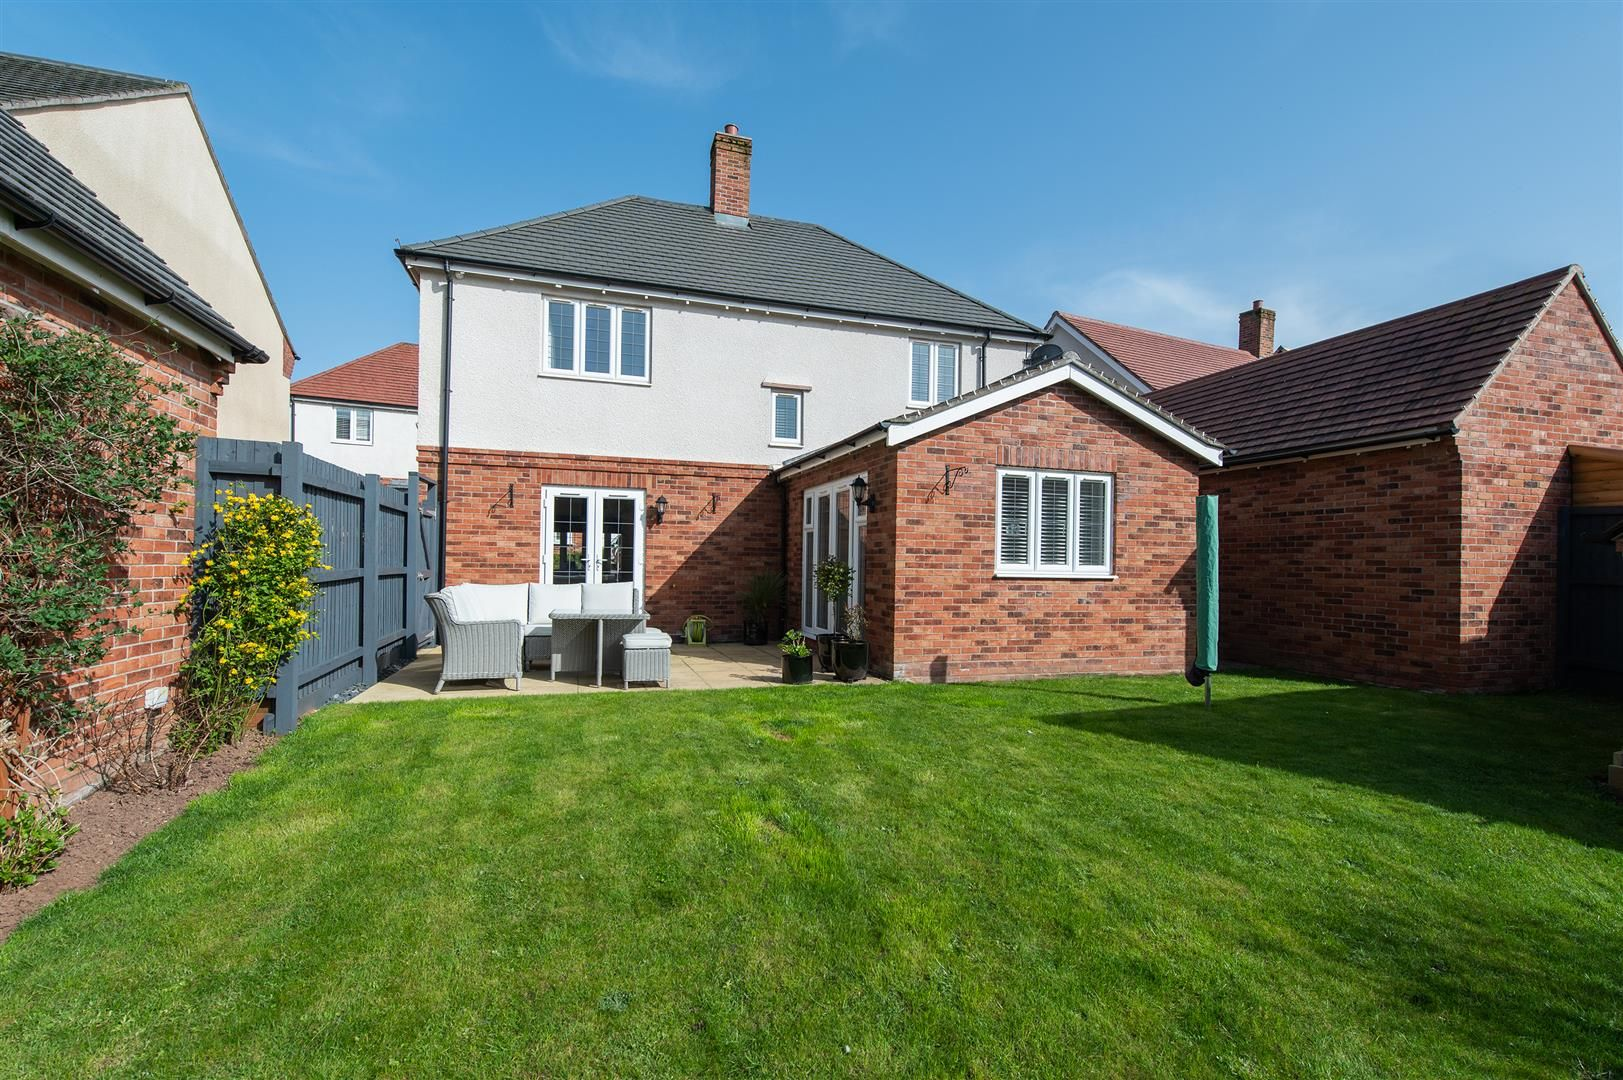 3 bed detached for sale in Hagley  - Property Image 23